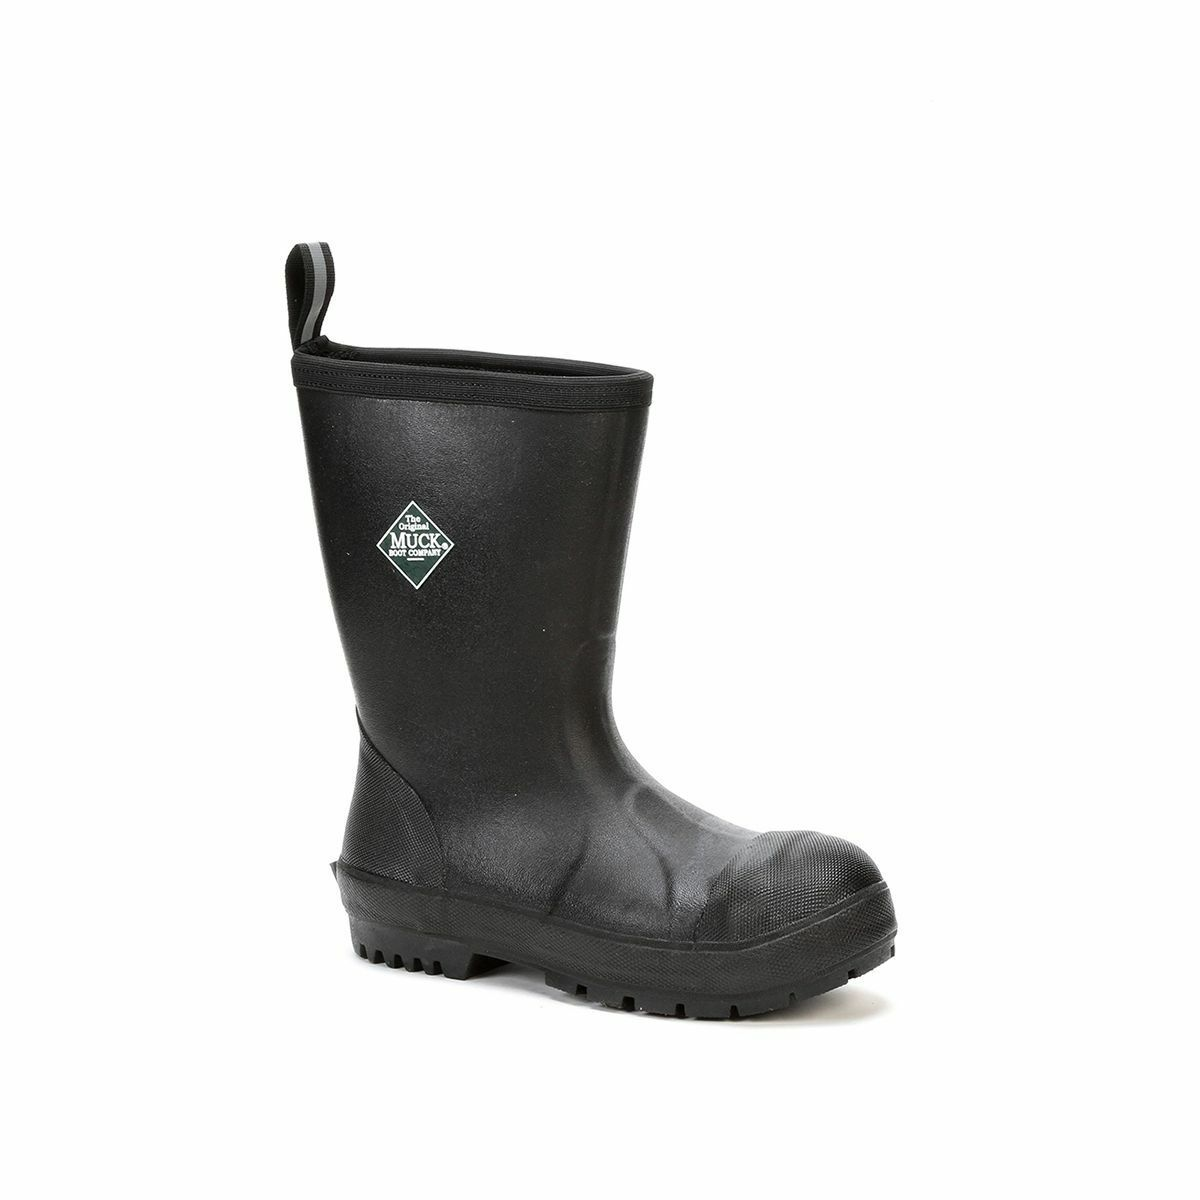 Muck Boots Company Men's/Women's CHORE RESISISTANT MID STEEL SAFETY TOE, BLACK